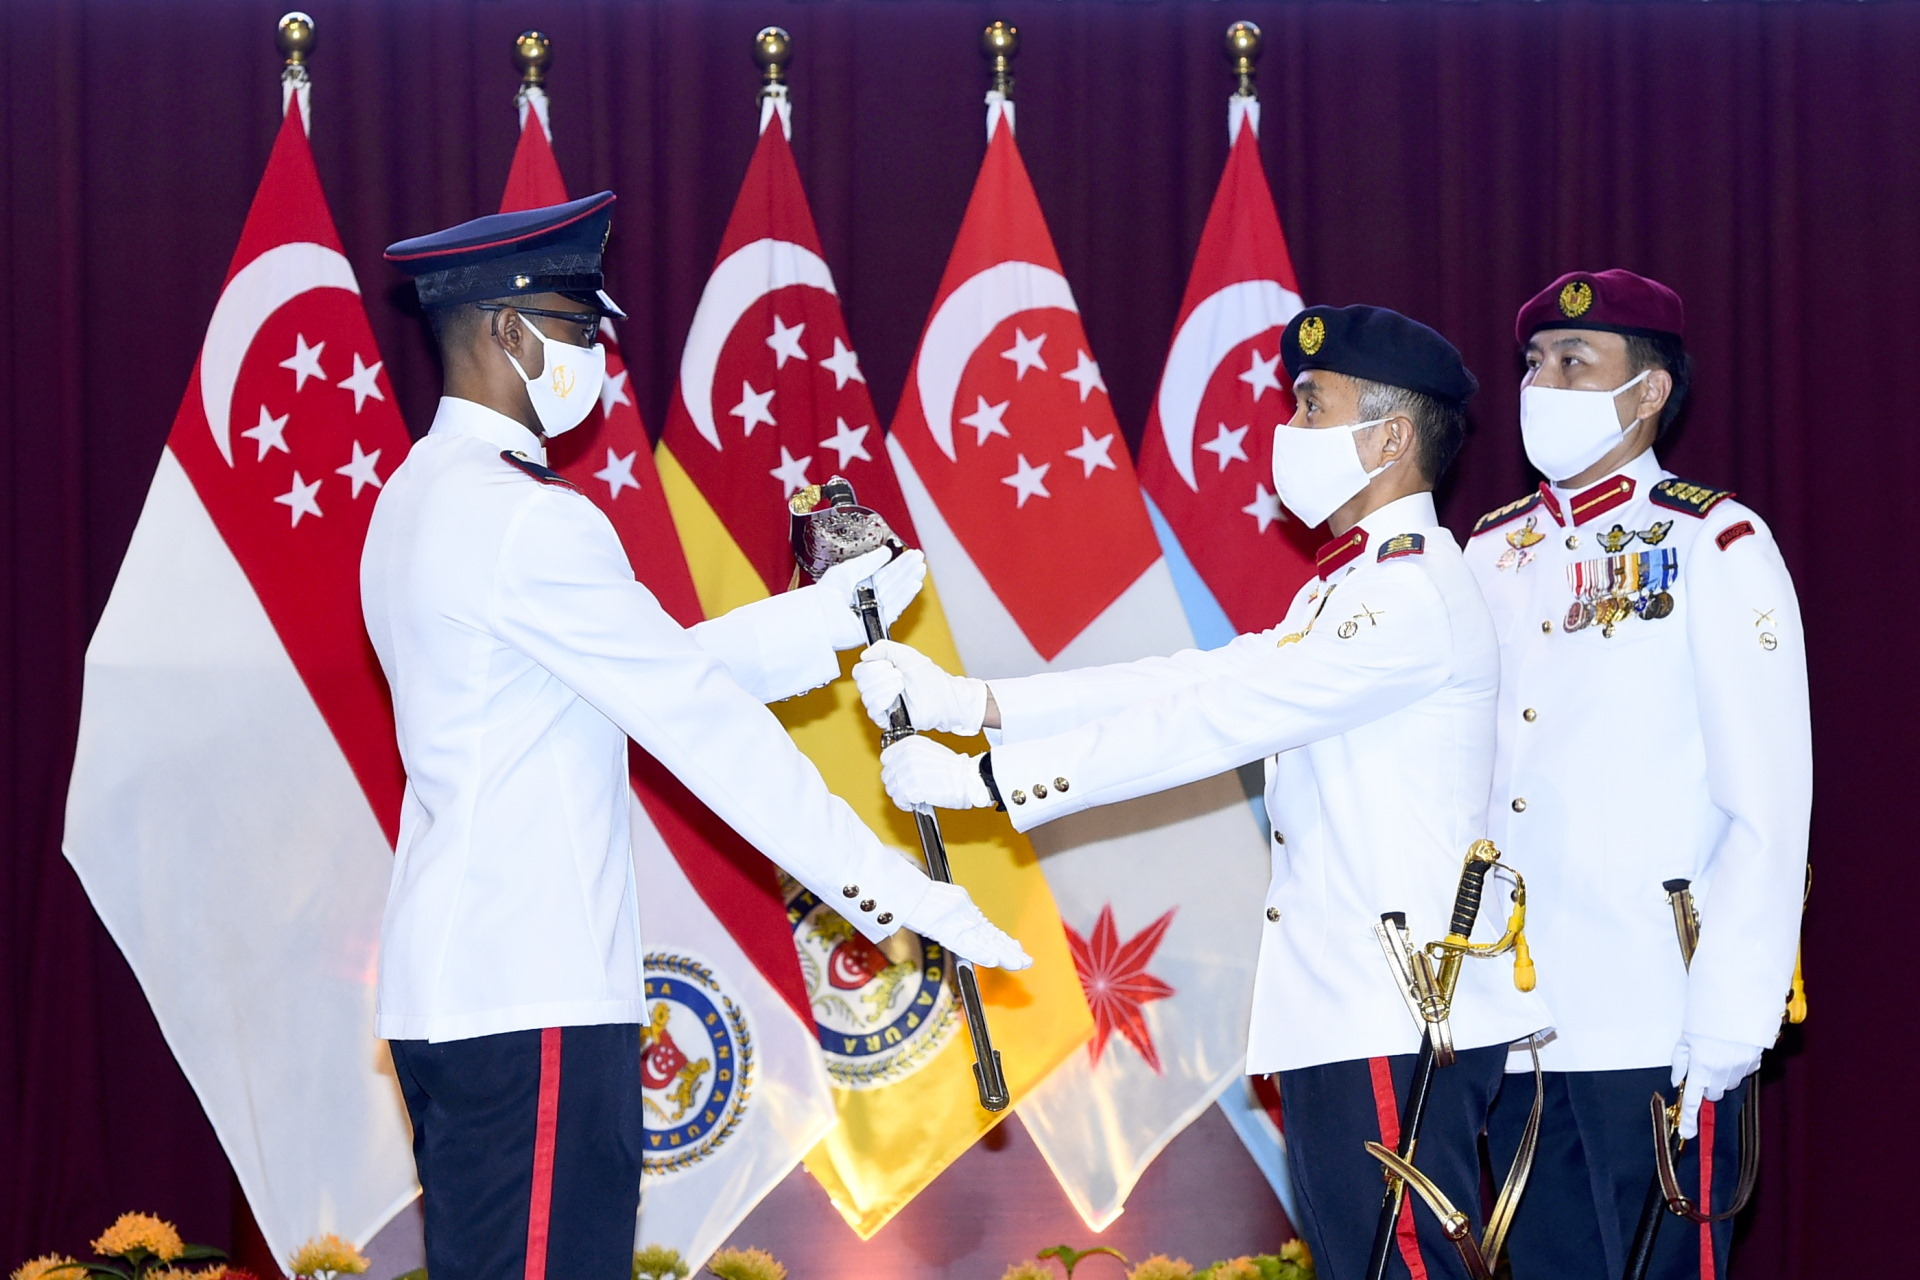 https://www.mindef.gov.sg/web/wcm/connect/pioneer/f1c6e3dc-12b1-457e-b0c6-c3cd2f8129f0/10may21_news1-photo1.jpg?MOD=AJPERES&CACHEID=ROOTWORKSPACE.Z18_NG96HO01018QE0Q5VUU2KN0571-f1c6e3dc-12b1-457e-b0c6-c3cd2f8129f0-nE87FUS